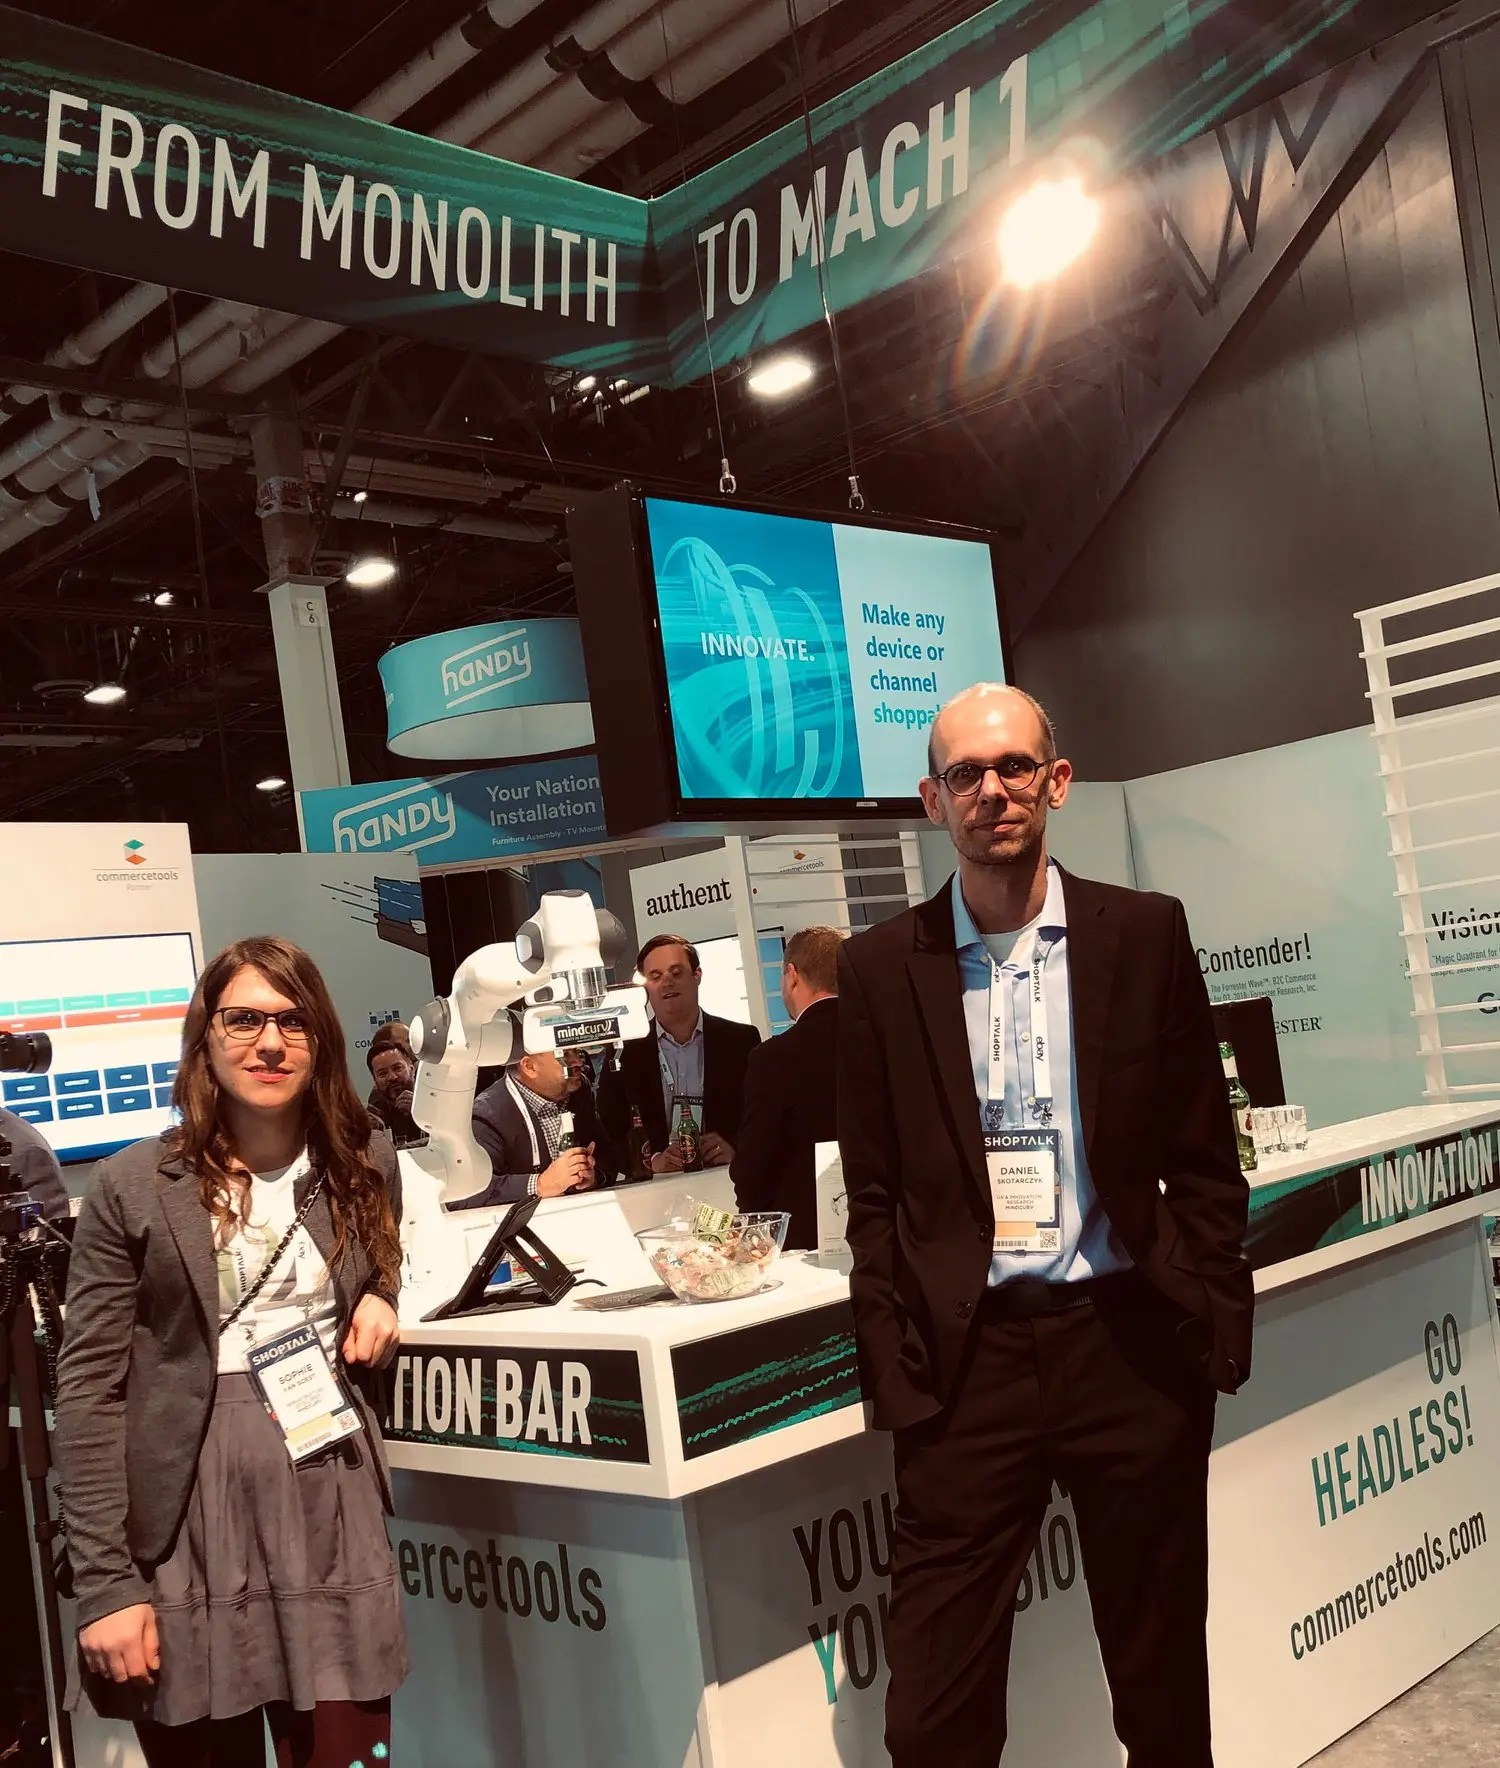 Sophie Van Soest and Daniel Skotarczyk at commercetools Innovation bar during the Shoptalk 2019 event in Las Vegas